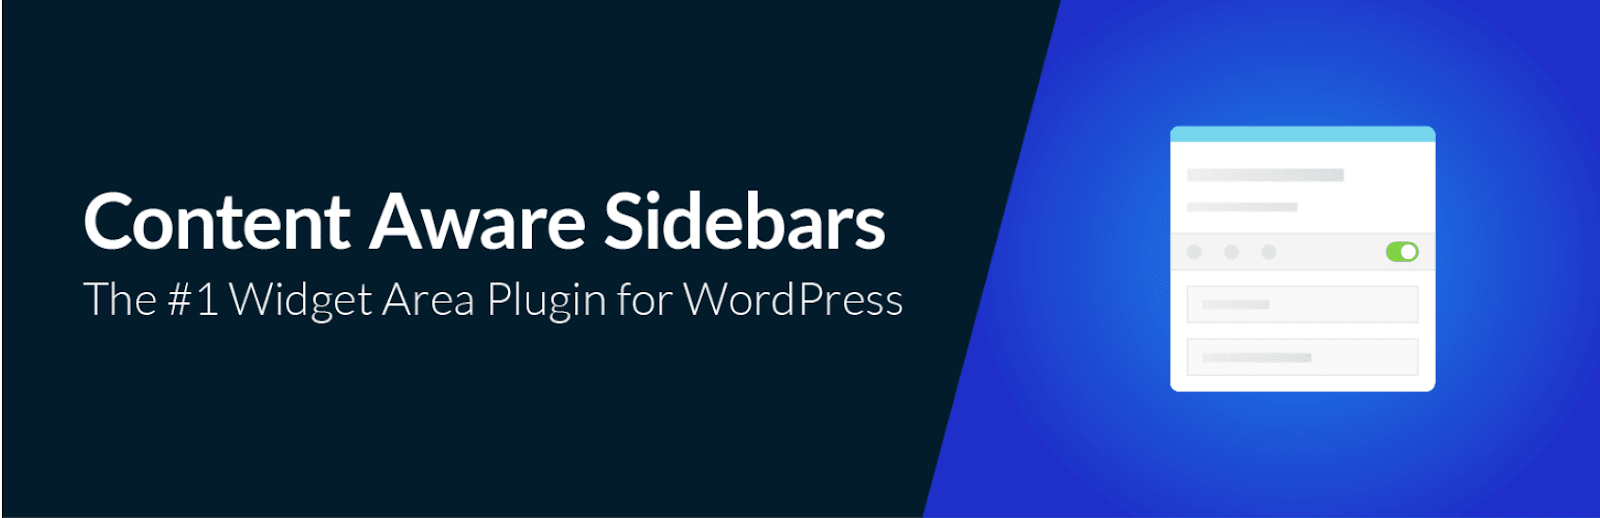 Content Aware Sidebar WordPress plugin